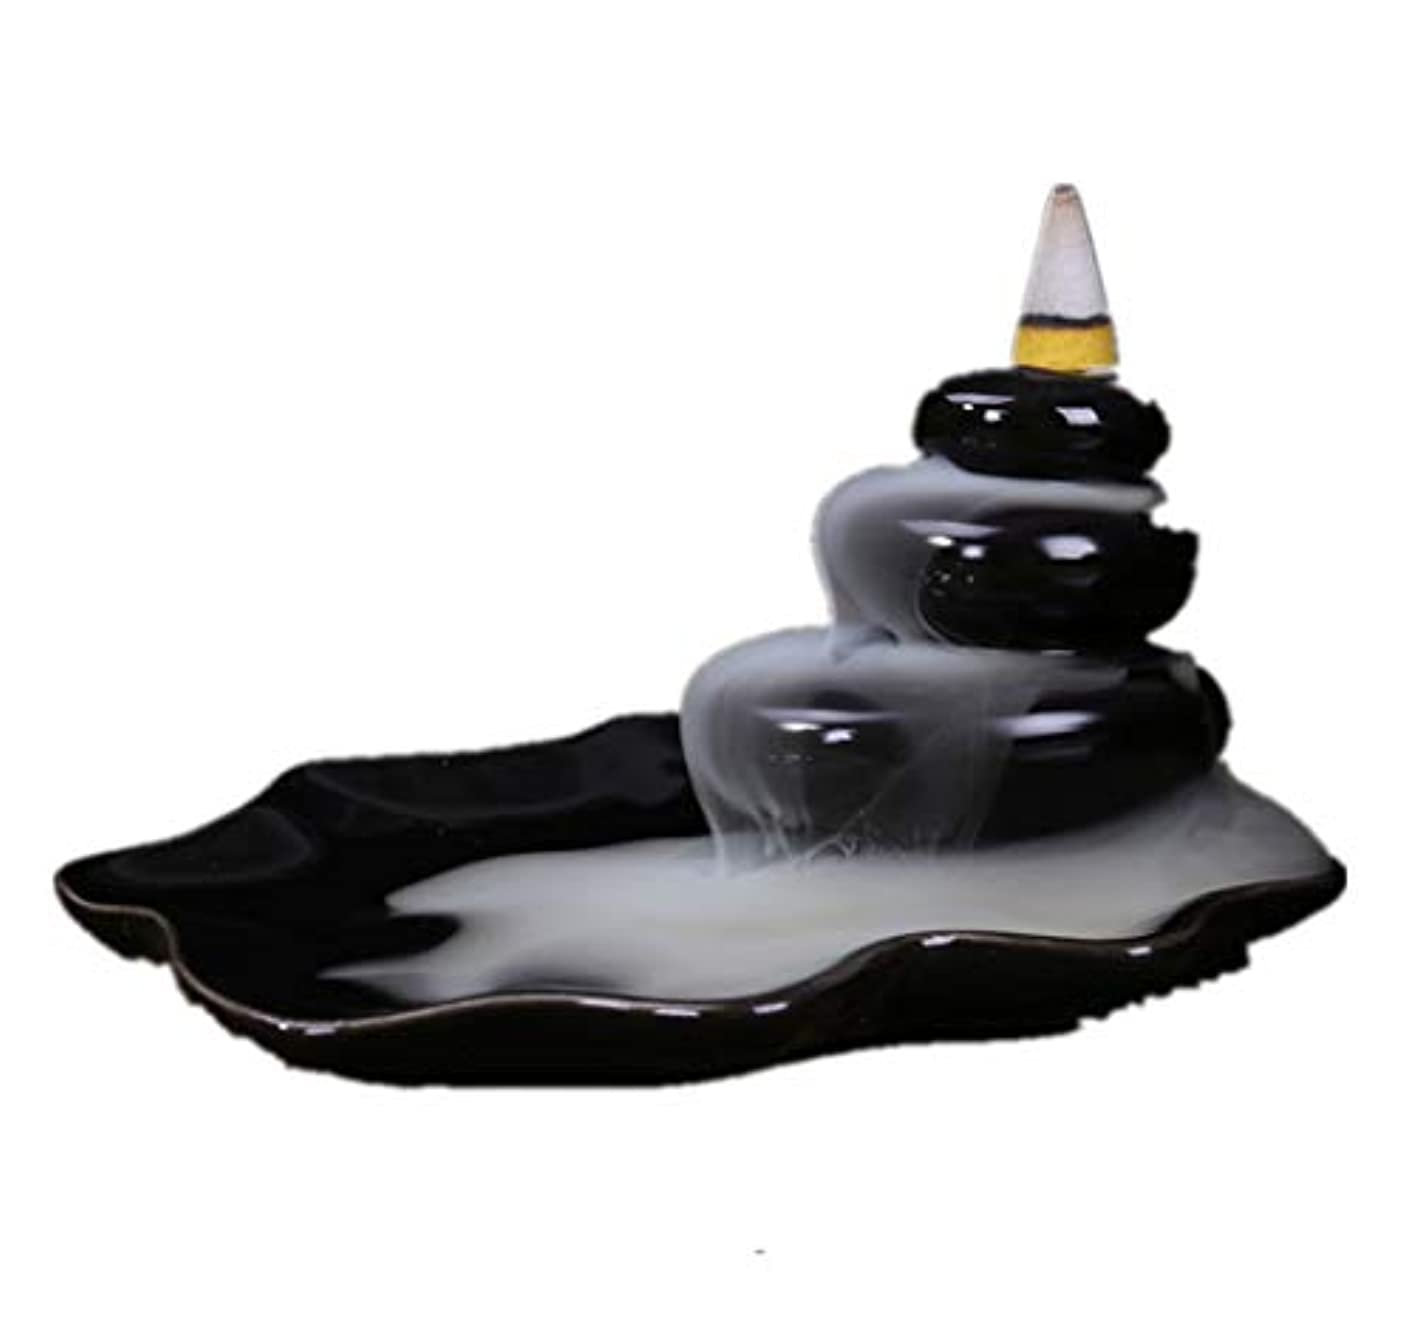 モニターおしゃれな料理XPPXPP Backflow Incense Burner, Household Ceramic Returning Cone-shaped Candlestick Burner